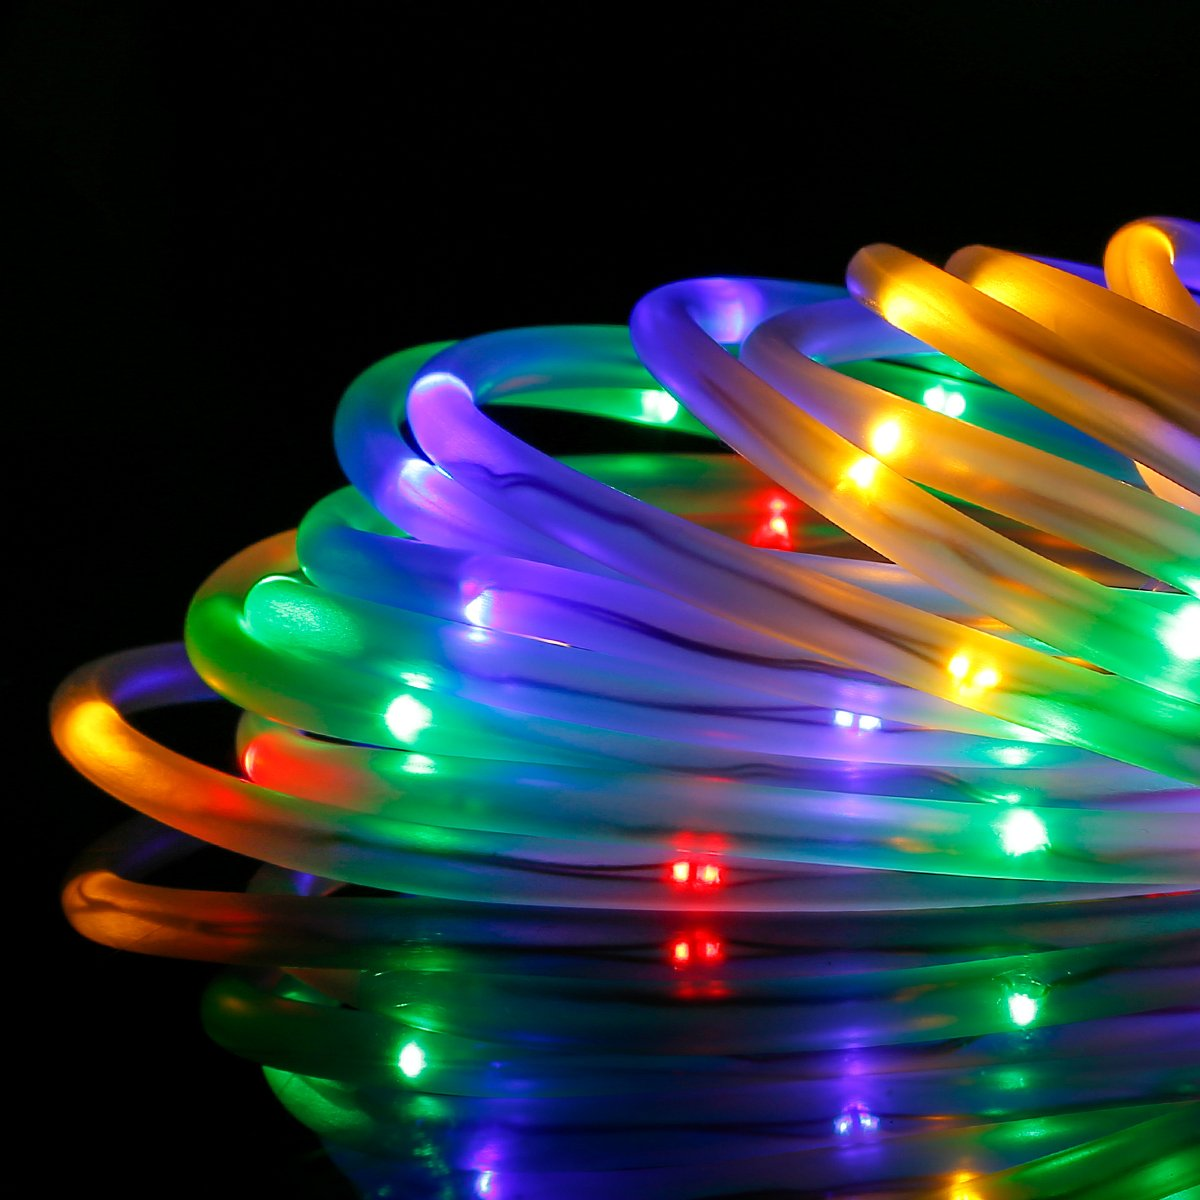 Led Lights Rainbow: 39FT RGB LED Strip Light Rainbow Rope 120 Fairy Tube